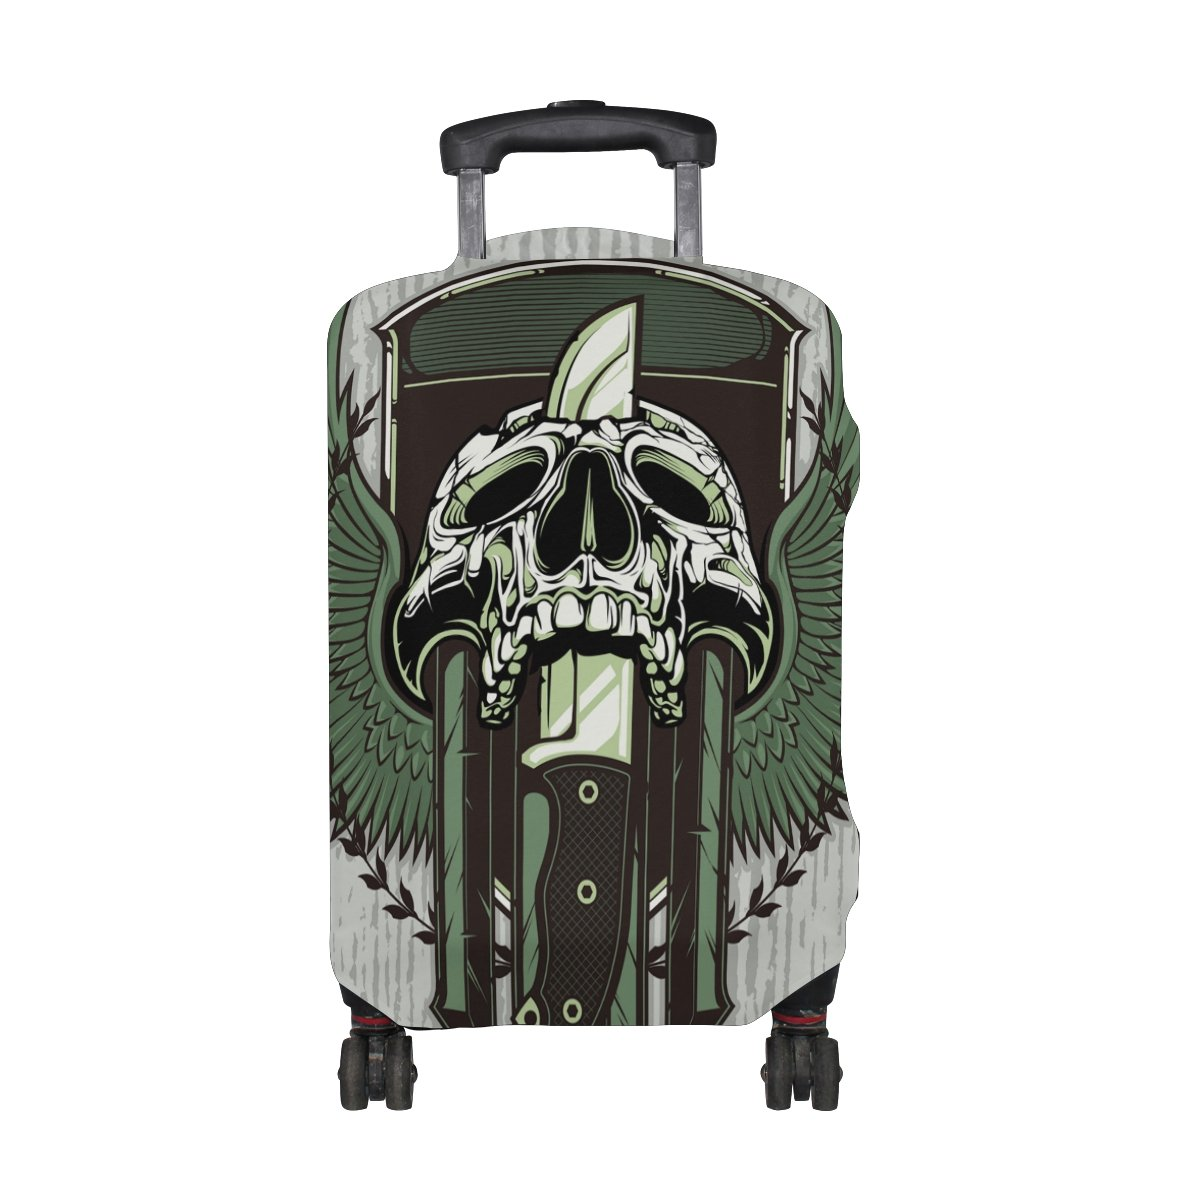 Punk Skull Travel Luggage Protector Baggage Suitcase Cover Fits 29-32 Inch Luggage by CoolPrintAll (Image #2)